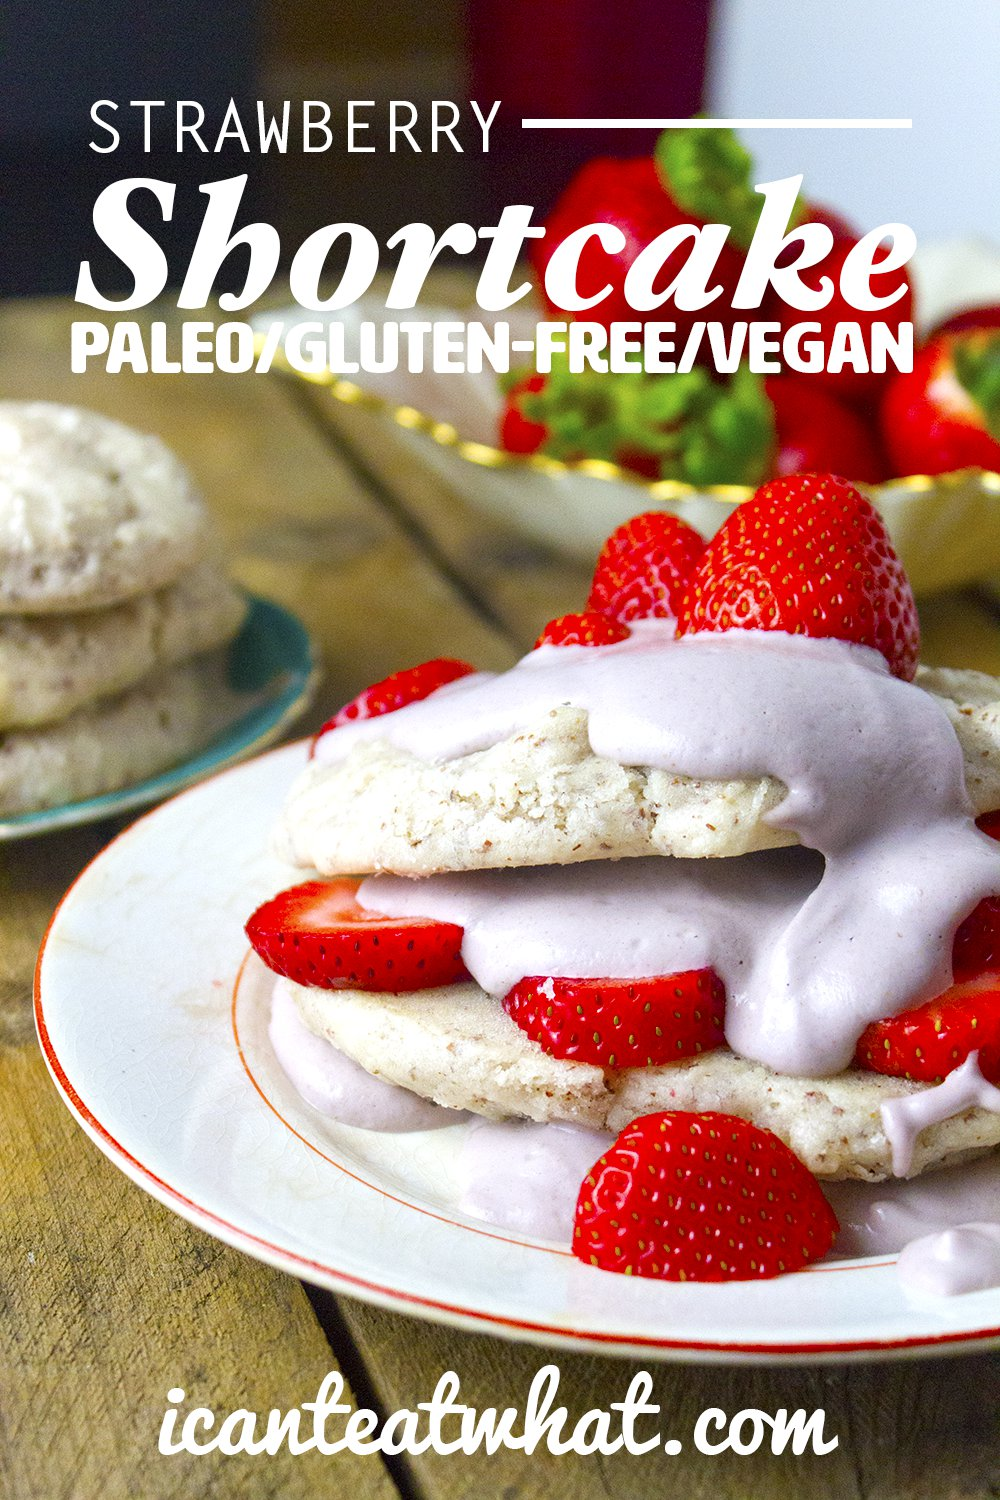 Vegan and Grain Free Strawberry Shortcake Recipe Easy